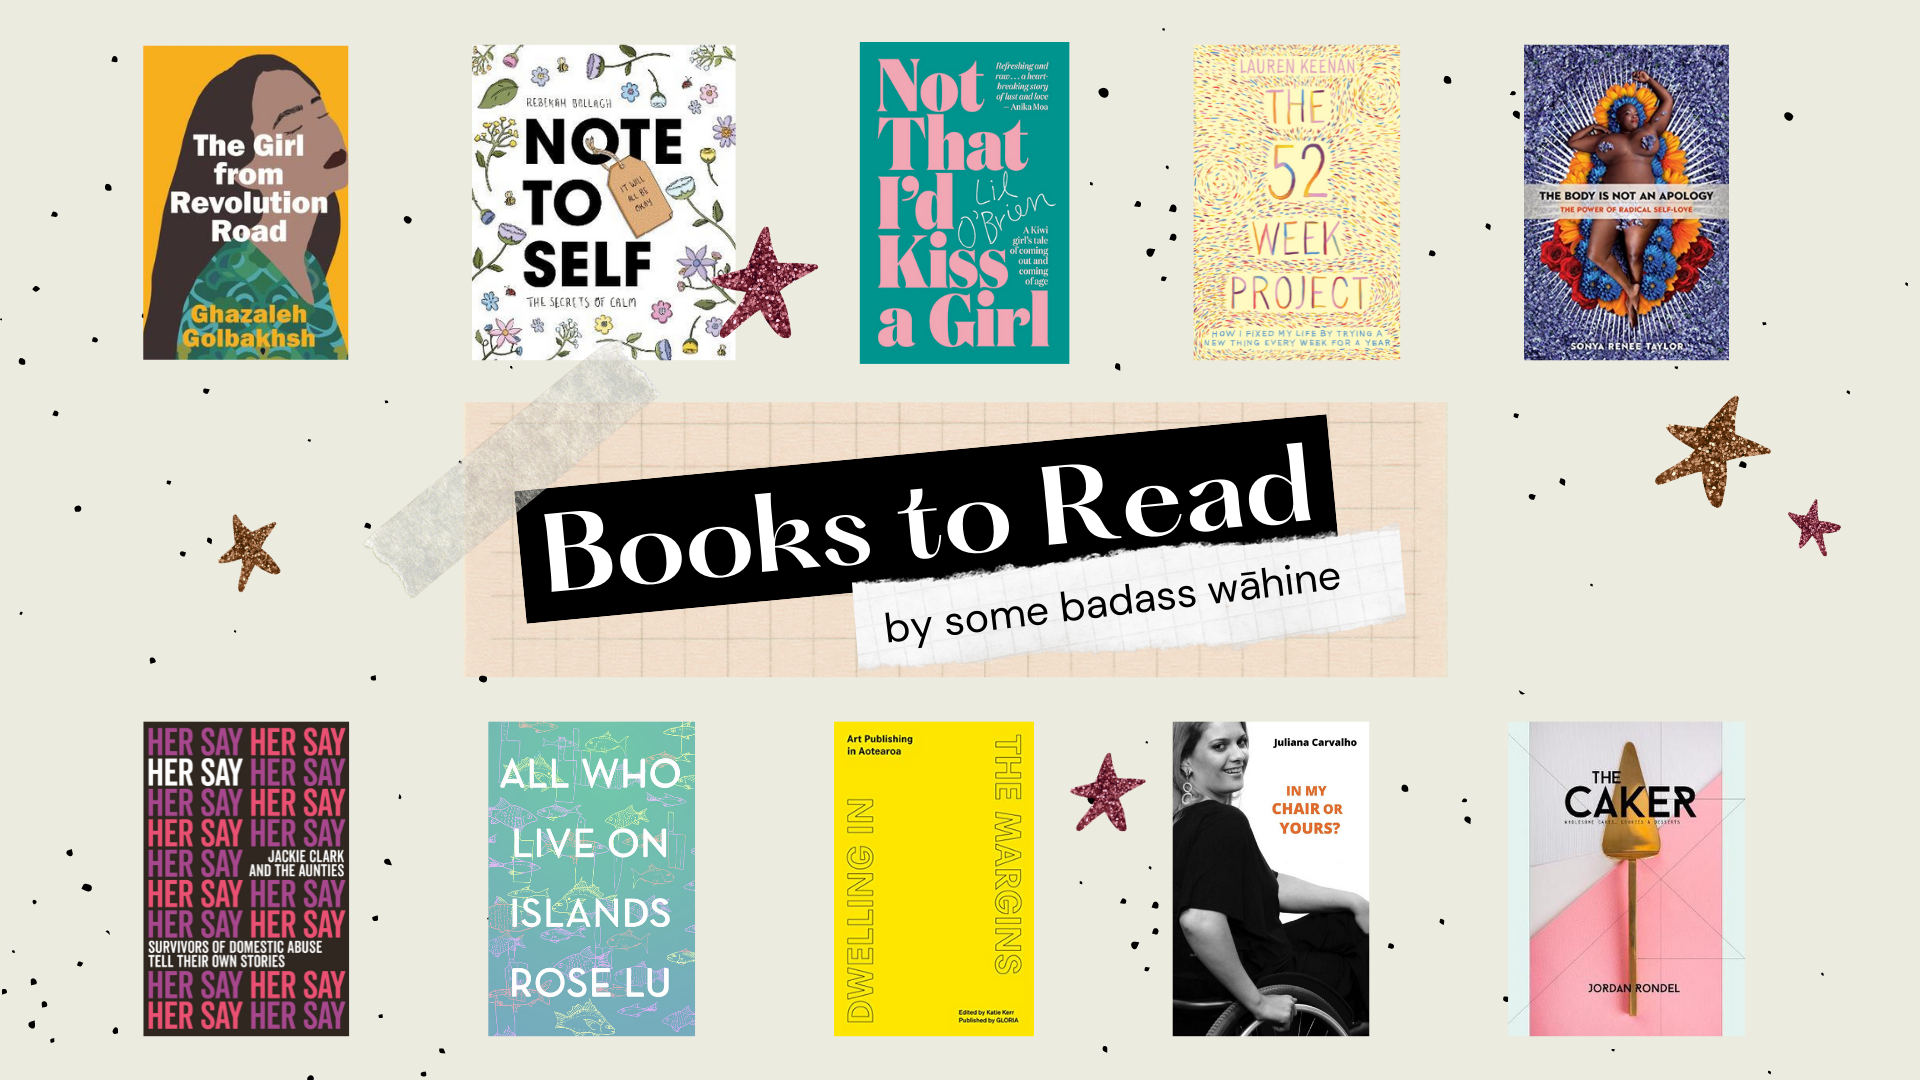 10 of the book covers displayed that we recommend reading